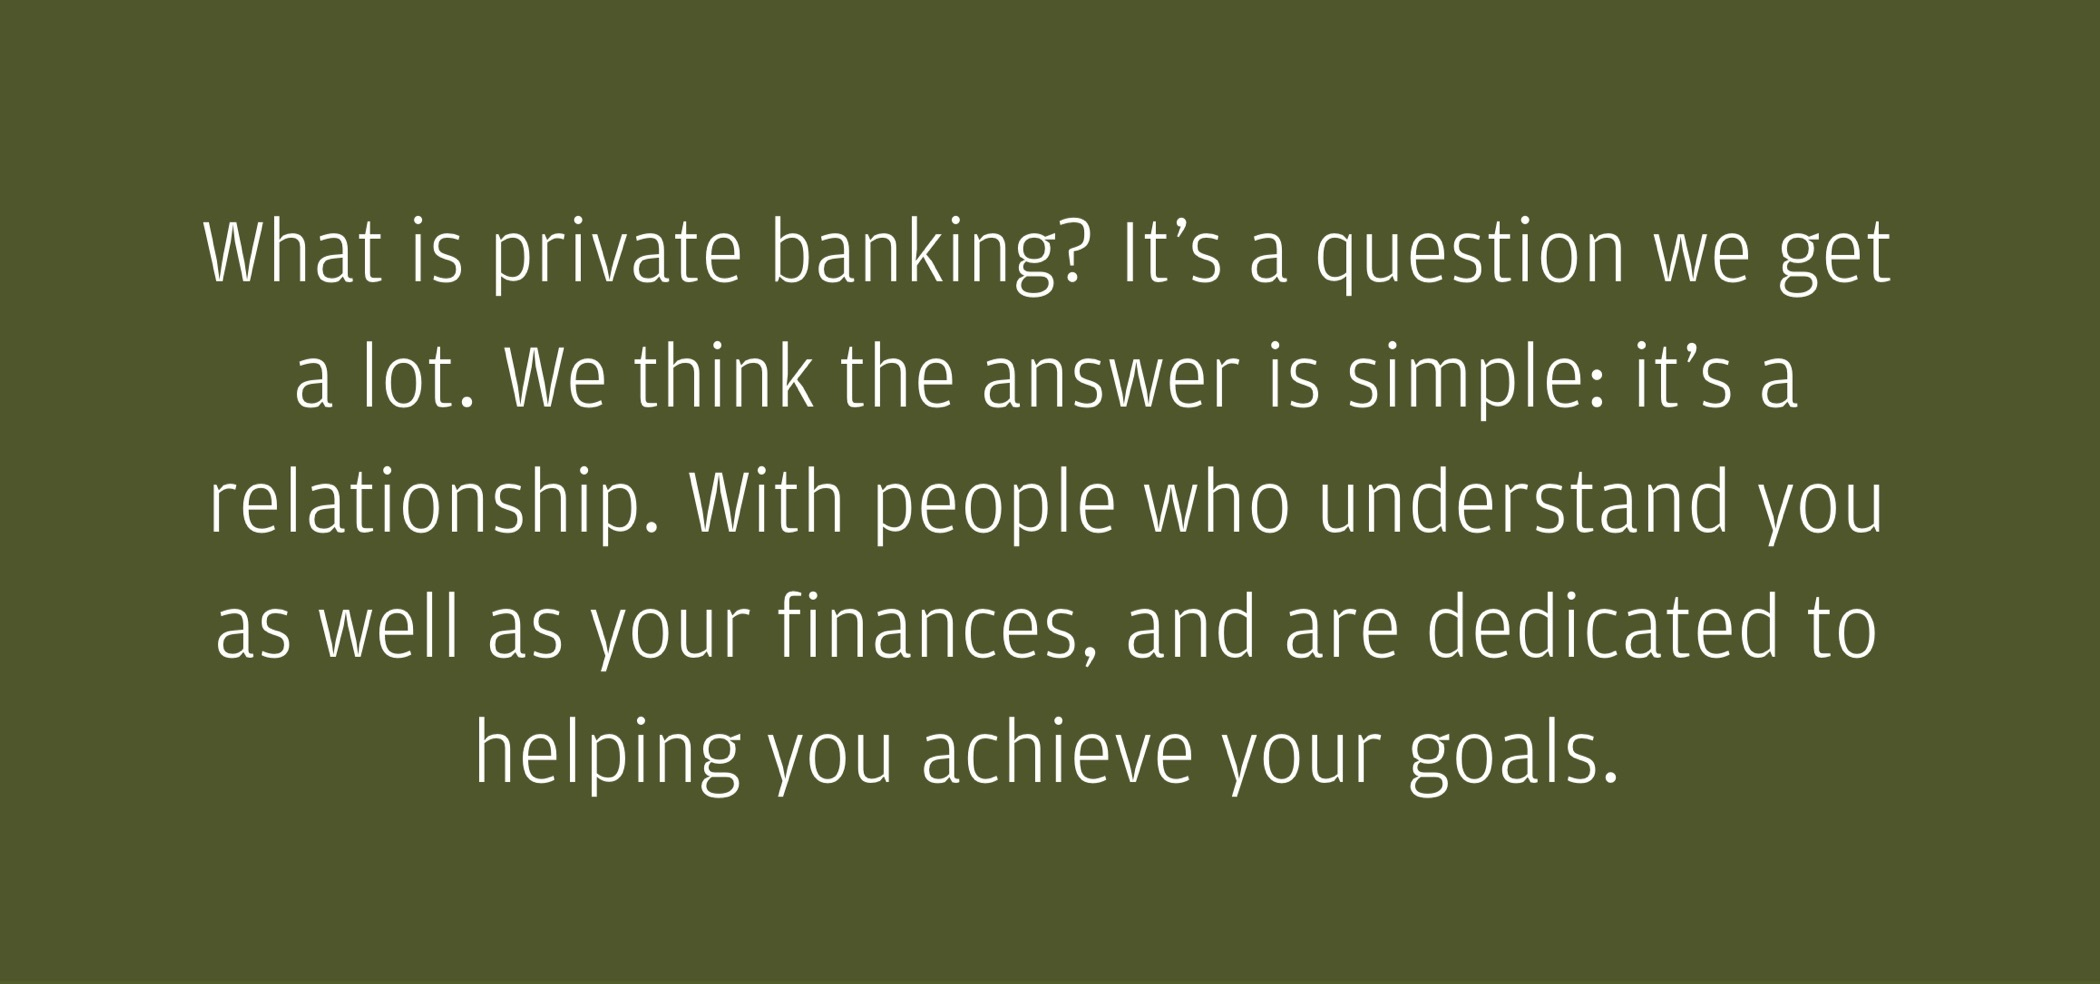 """About Us page quote: """"What is private banking? It's a question we get a lot. We think the answer is simple: it's an enduring relationship. With people who understand you, your life, as well as your finances, and are dedicated to helping you achieve your goals."""""""